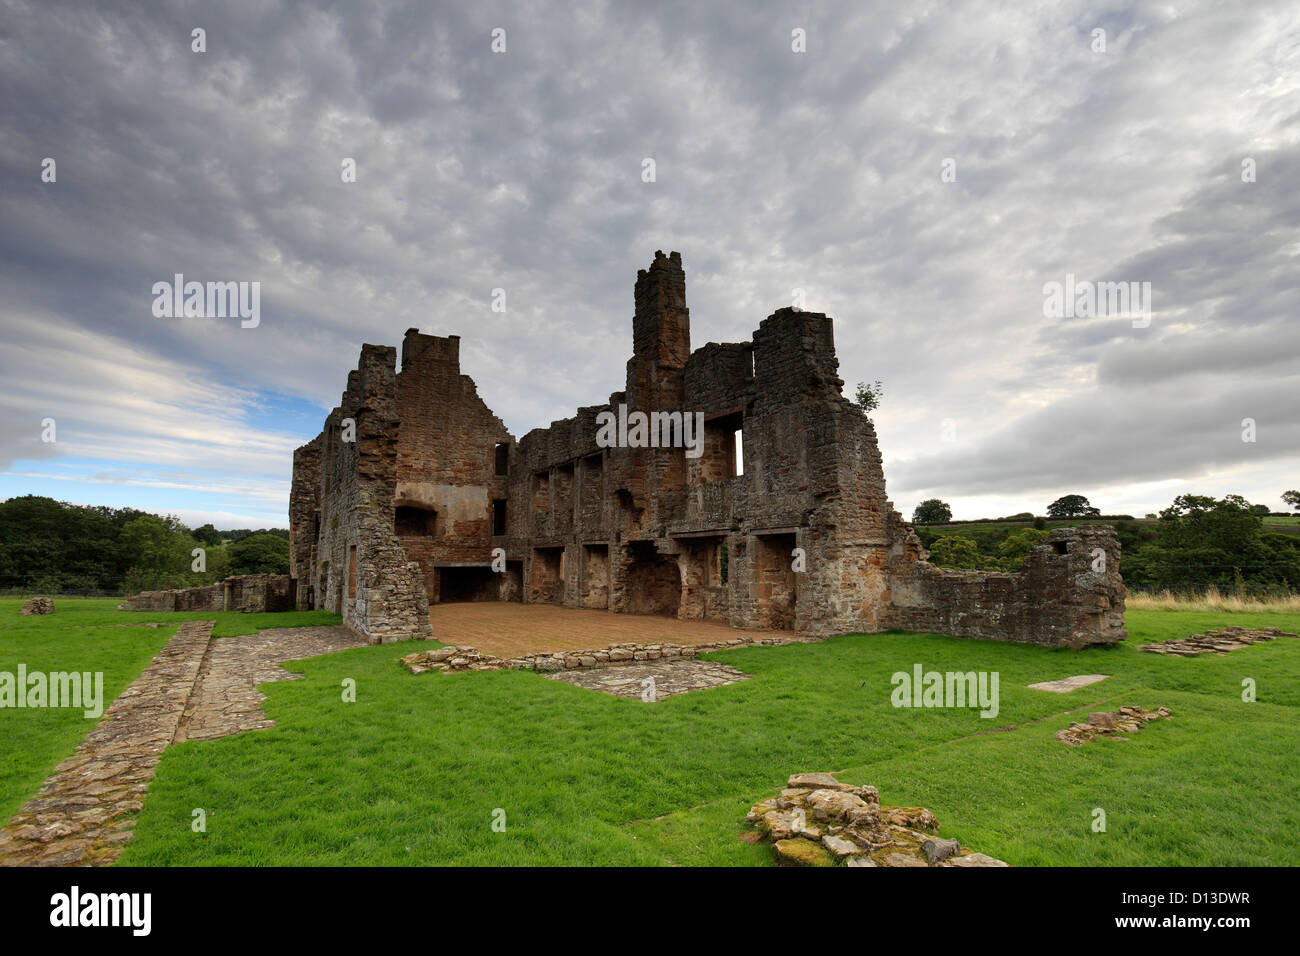 The ruins of Egglestone Abbey, near Barnard Castle Town, Teesdale, Durham County, England, Britain, UK Stock Photo